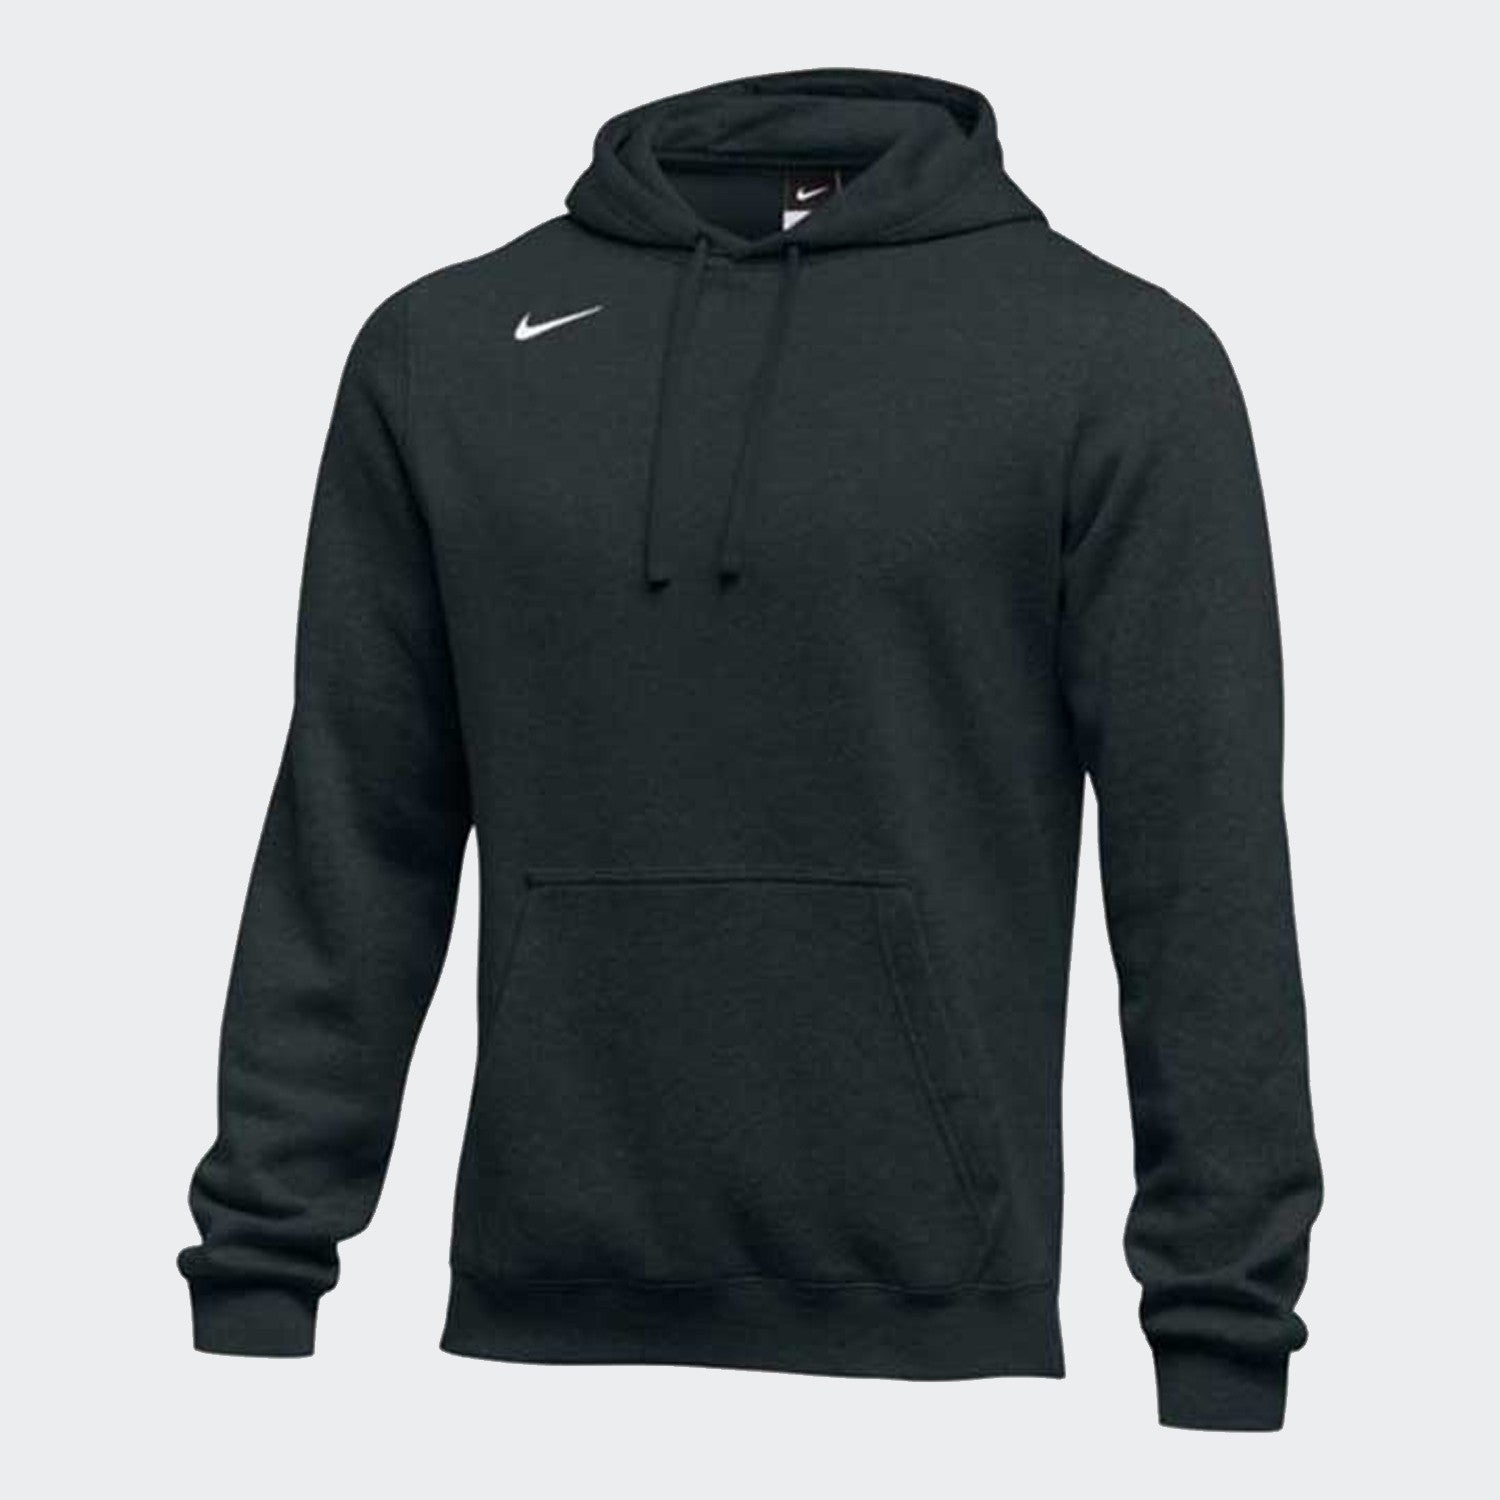 Men's Team Fleece Hoodie - Black